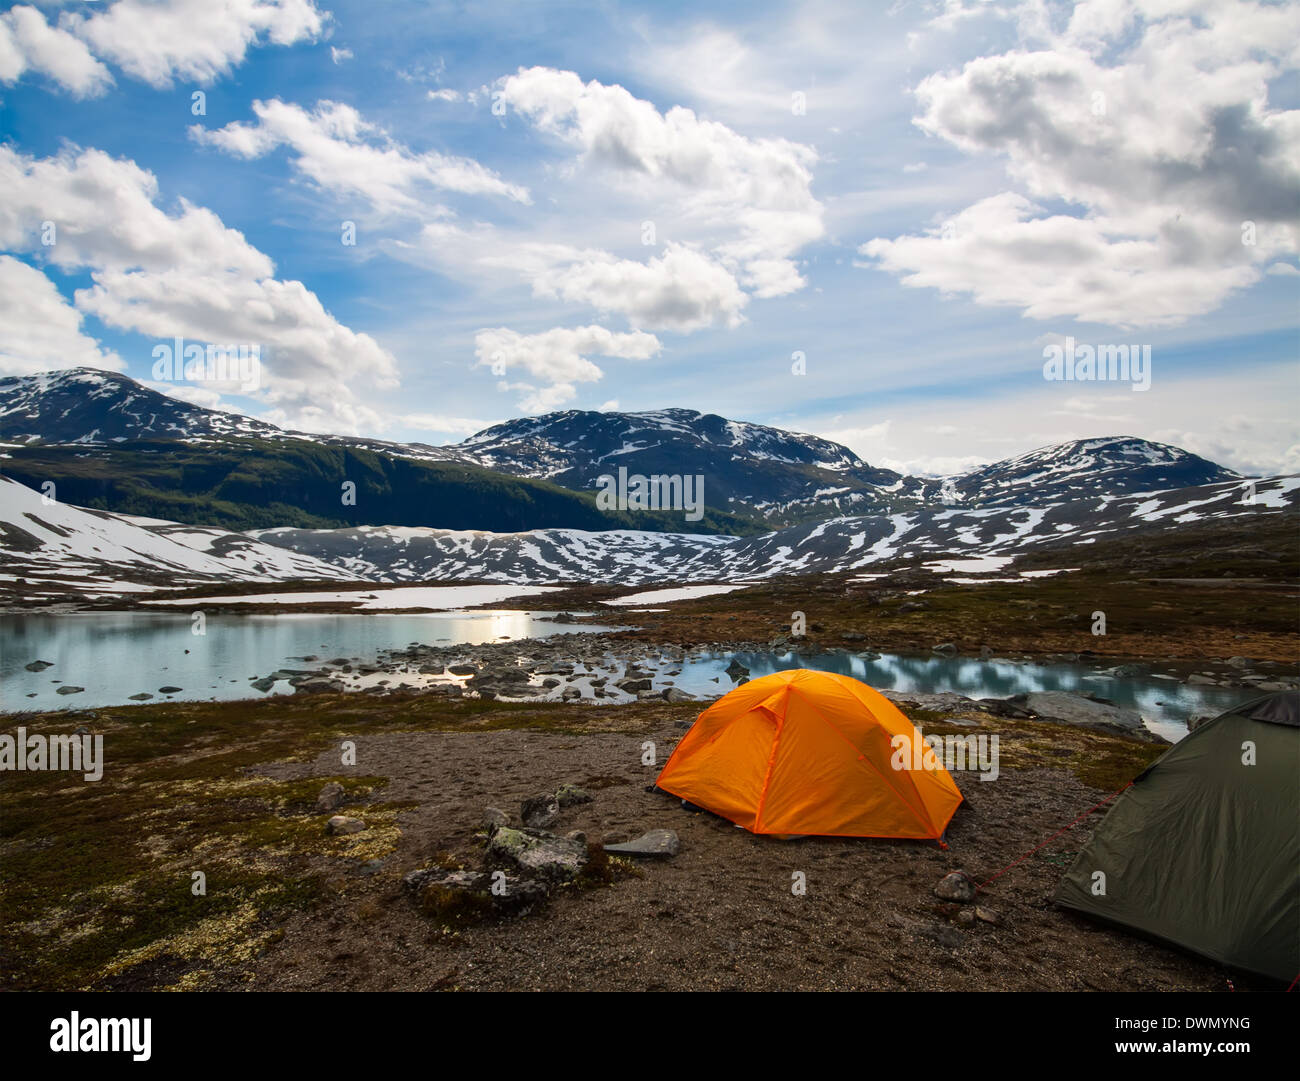 two tourist tents in mountains, summertime, Norway - Stock Image